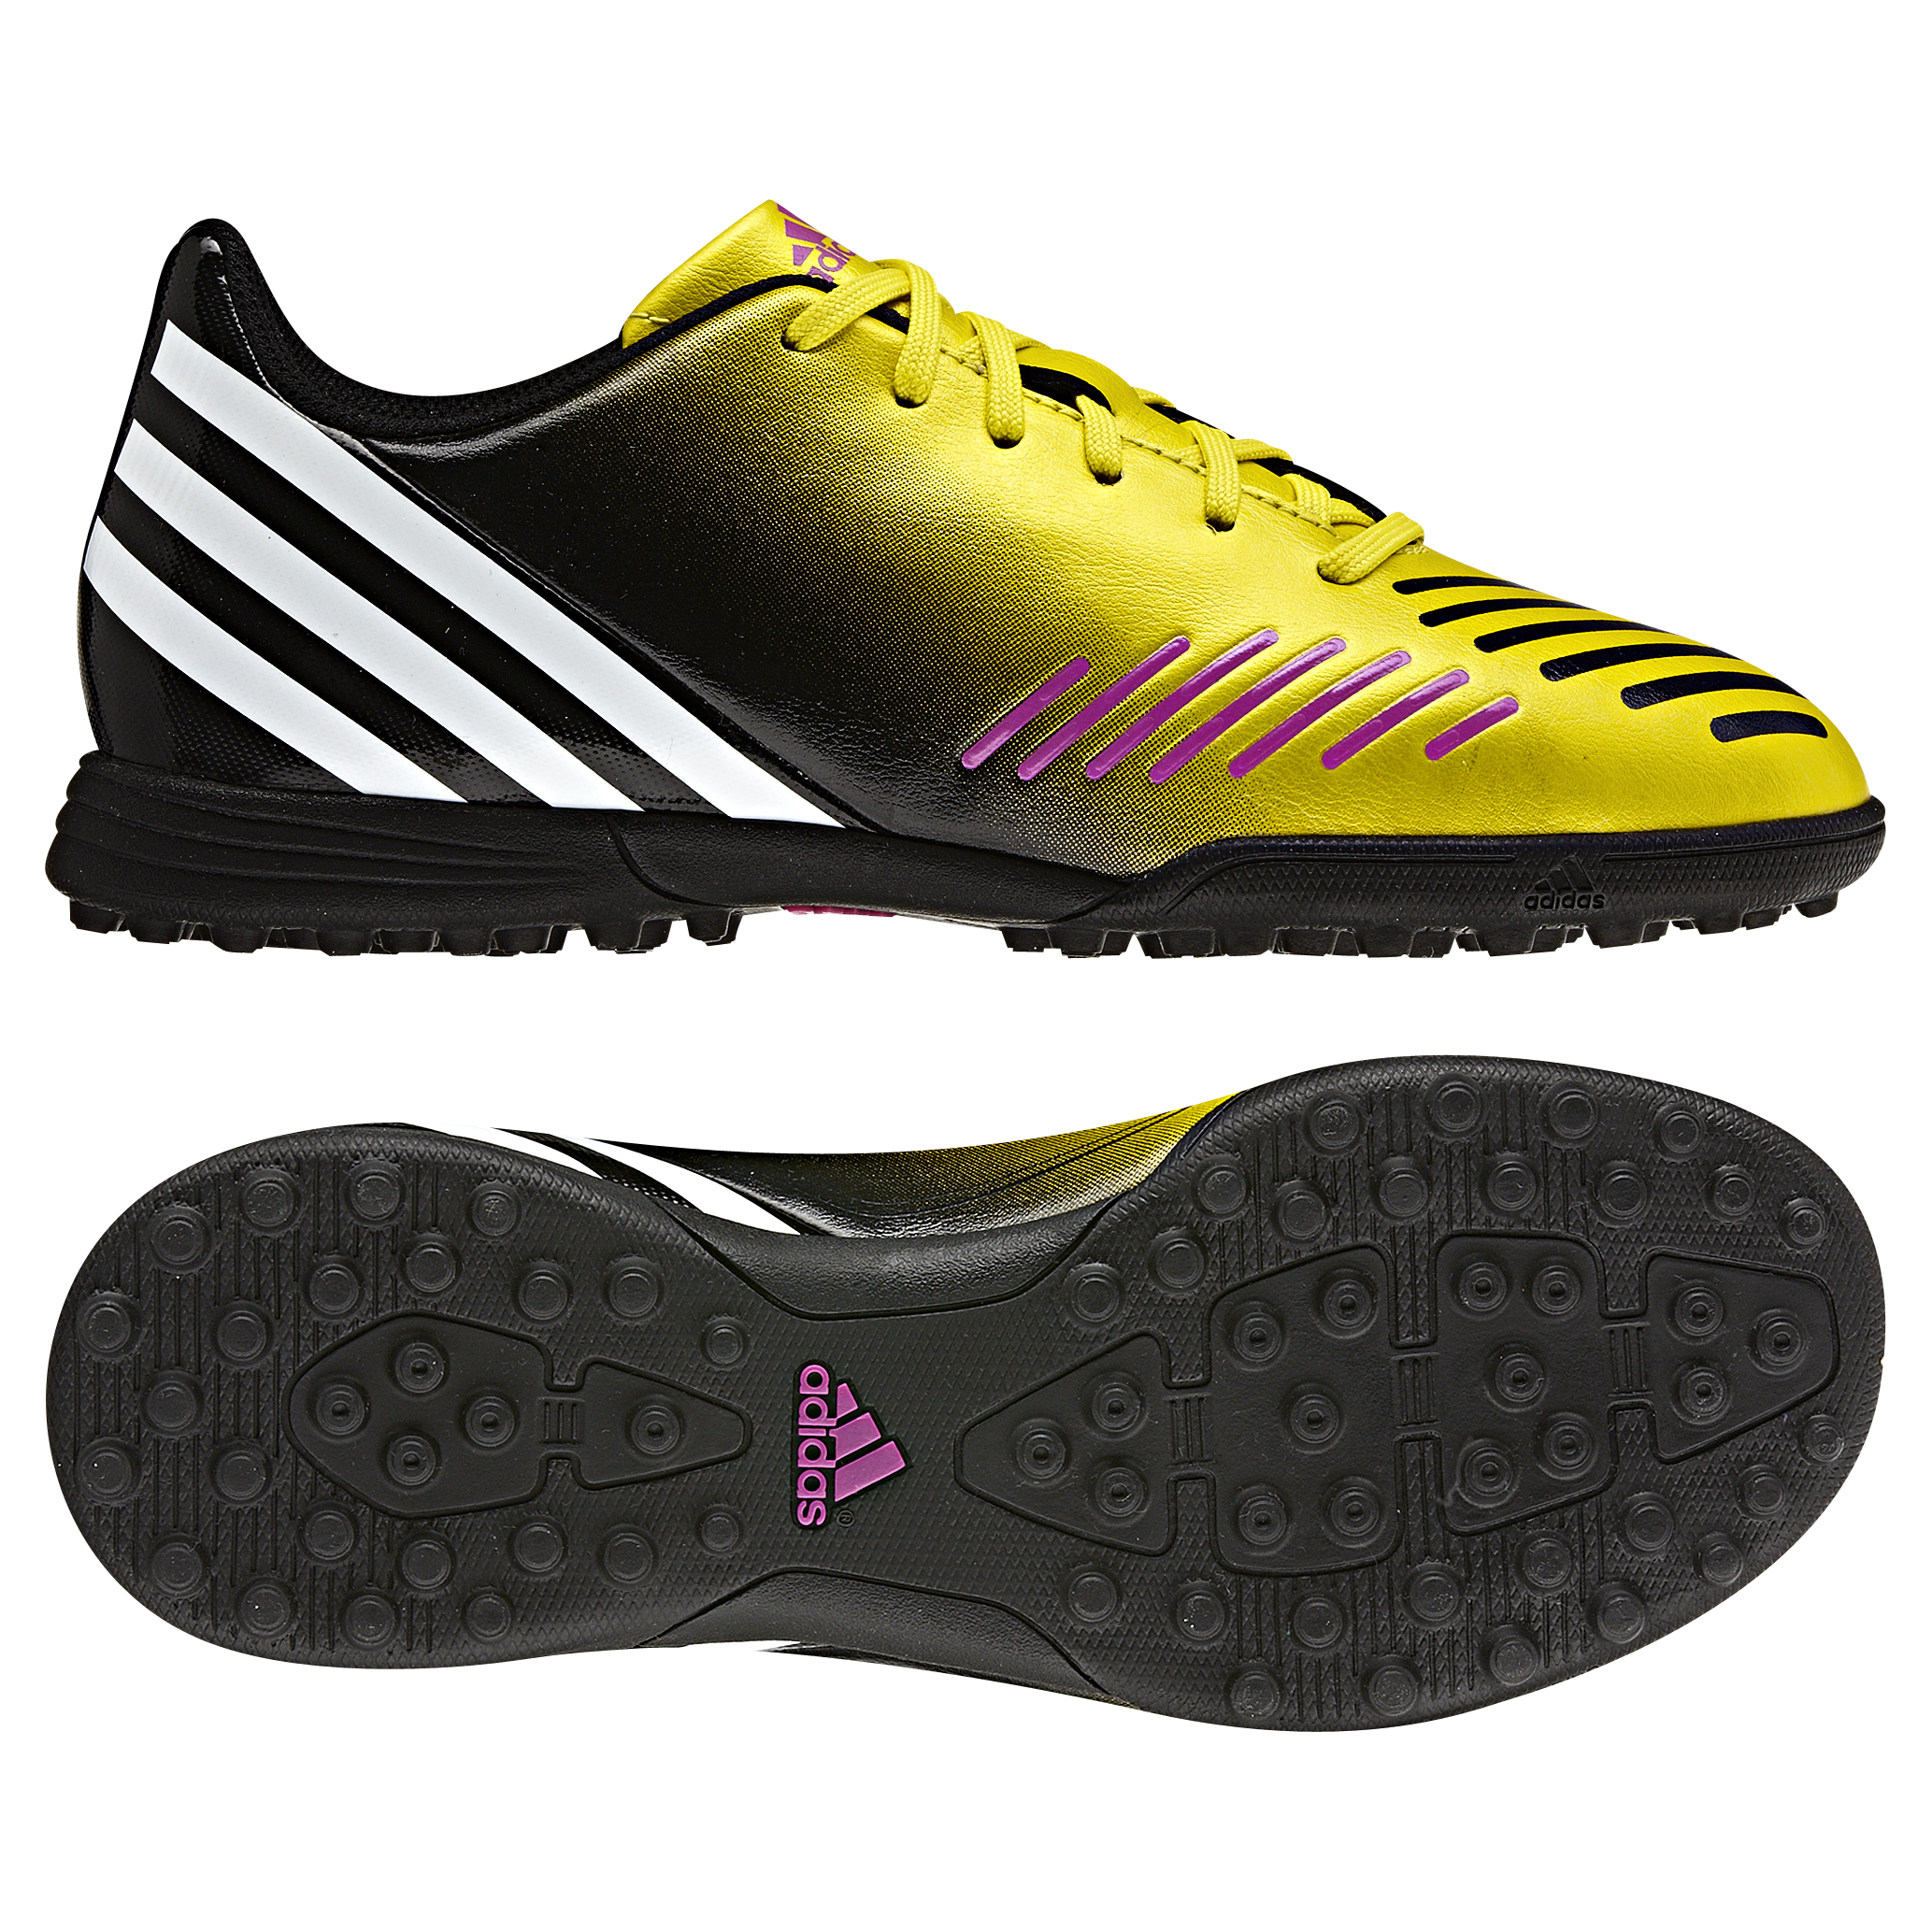 adidas Predito LZ TRX Astroturf Trainers - Vivid Yellow/Running White/Black - Kids